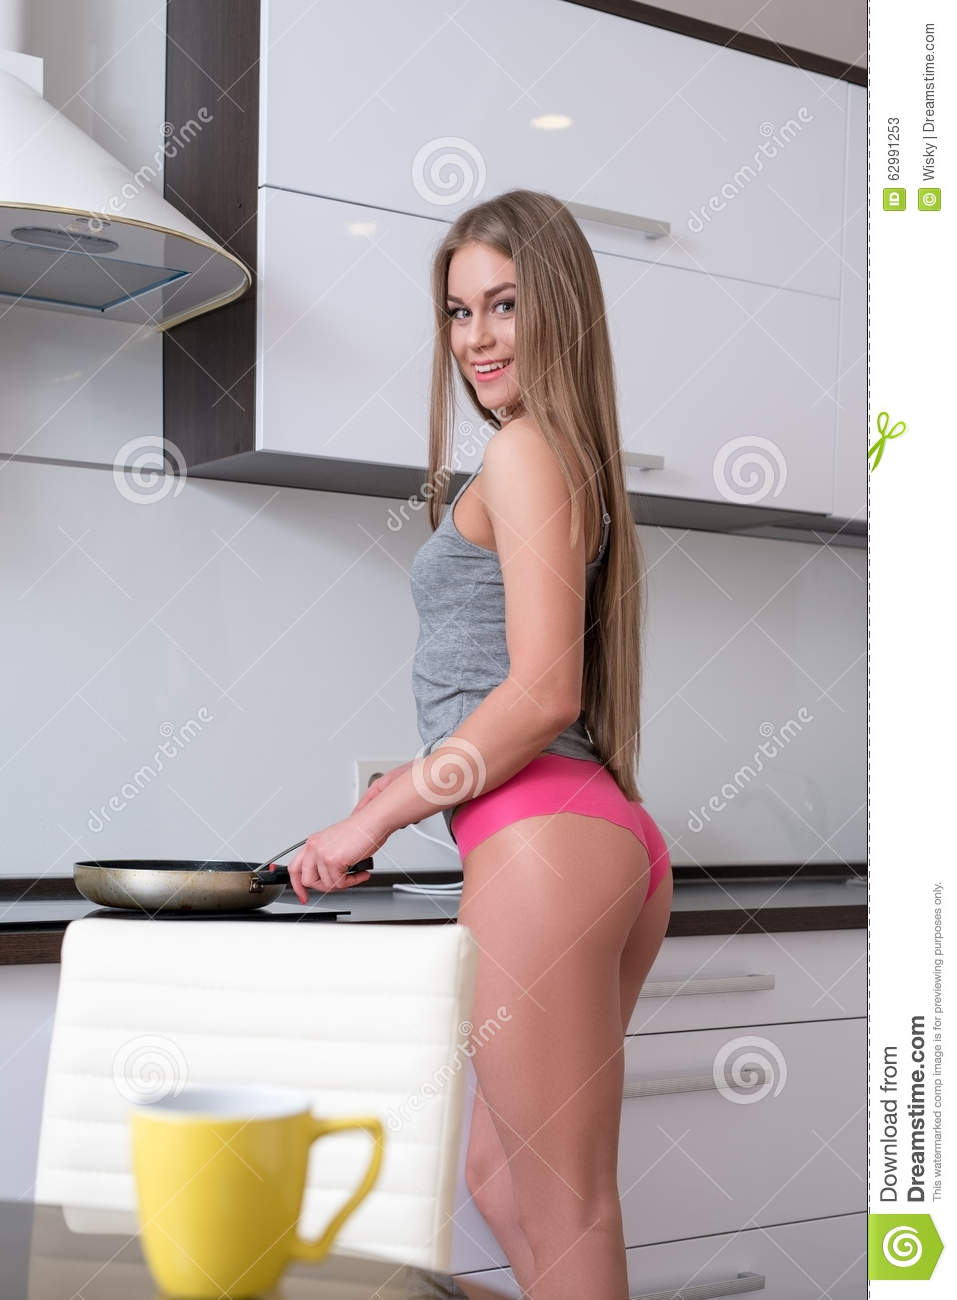 Can not Sexy cooking in lingerie seems me